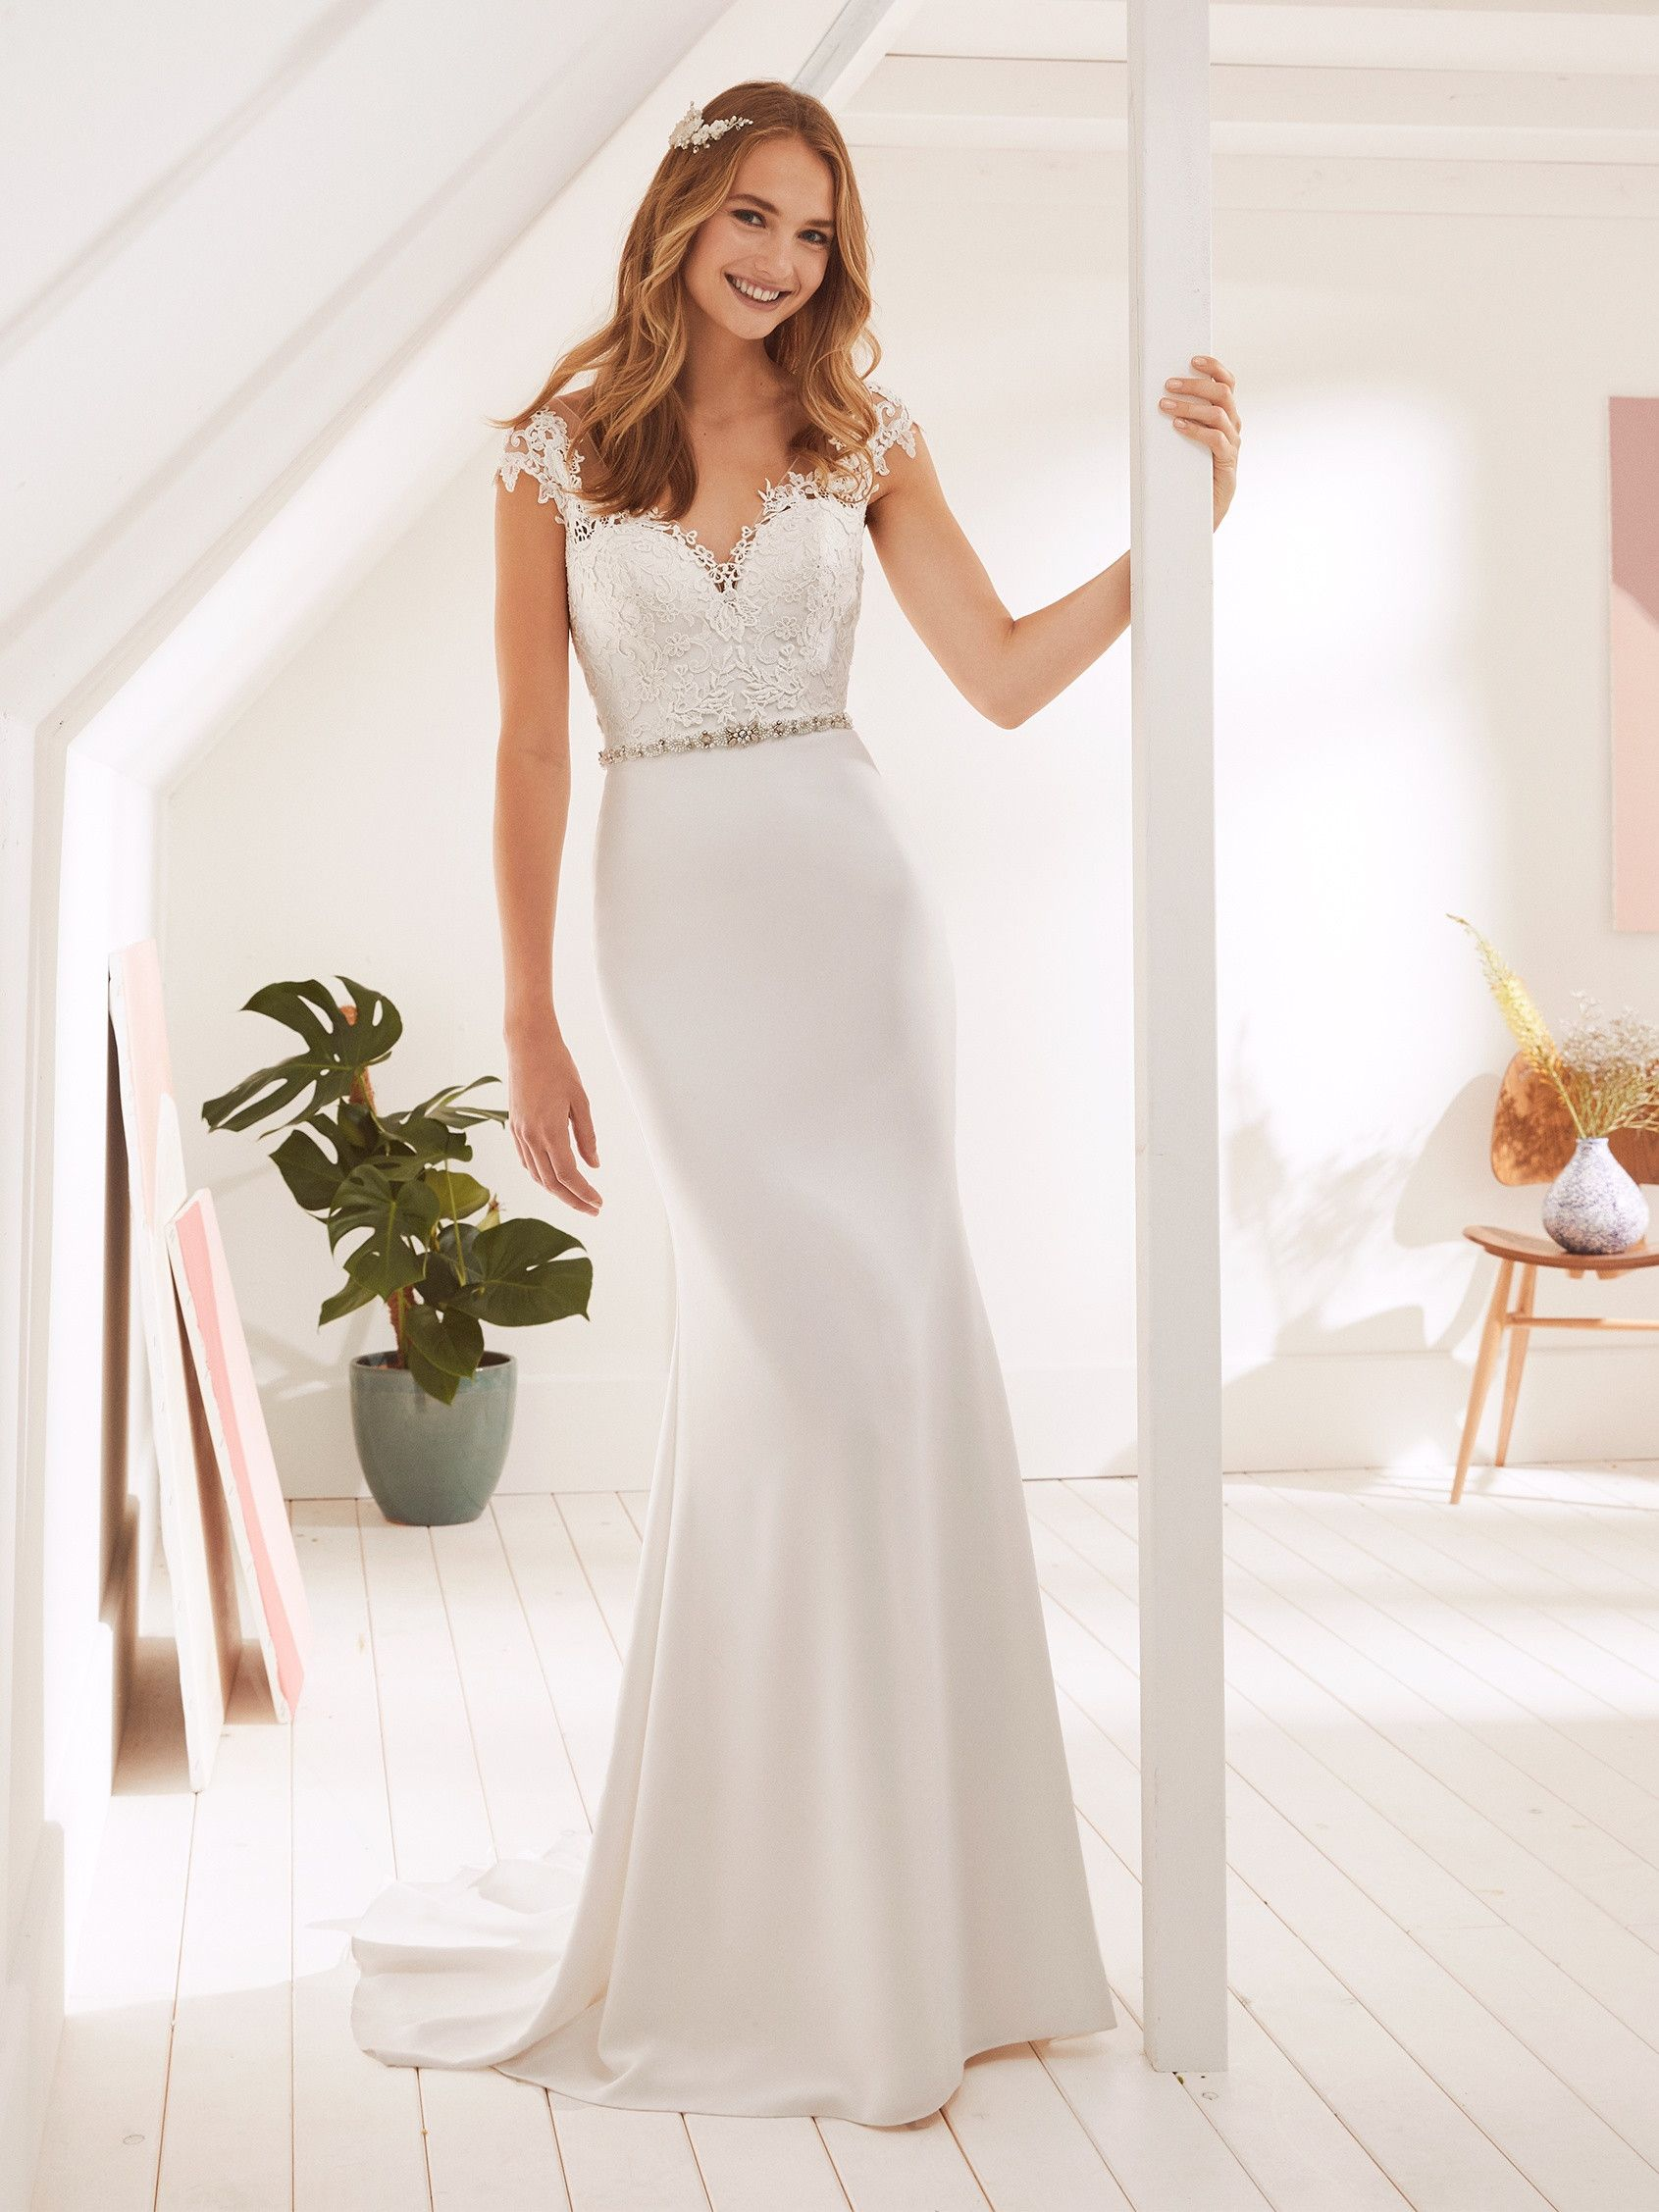 Orson Wedding Dress In Crepe With V Neck And Mermaid Silhouette Wedding Dresses Pronovias Wedding Dress Wedding Reception Dress